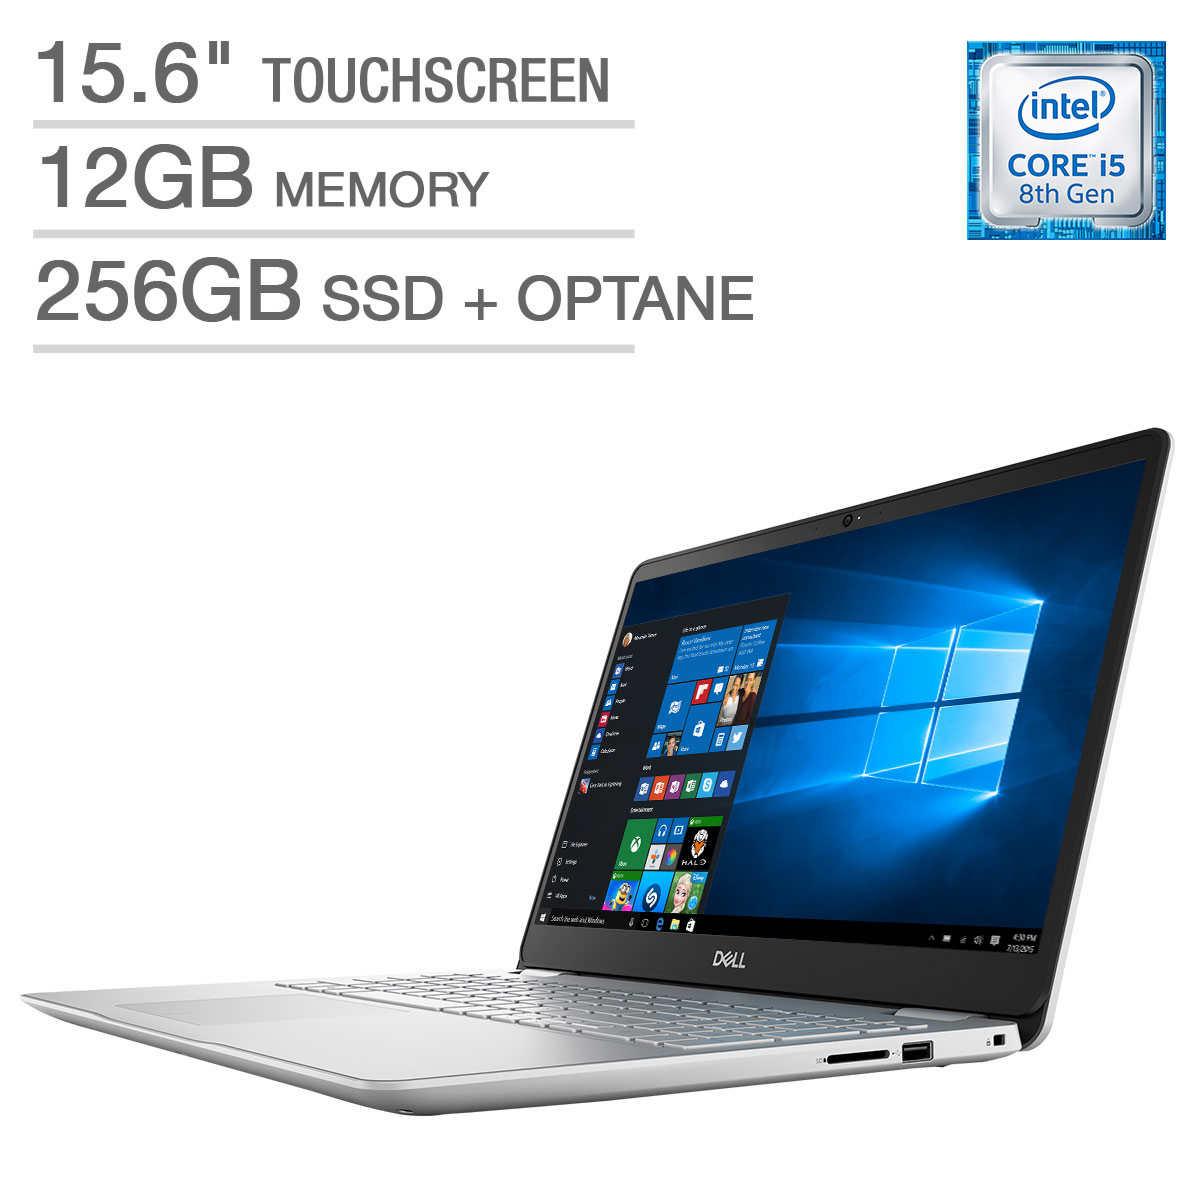 Dell Inspiron 15 5000 Touch